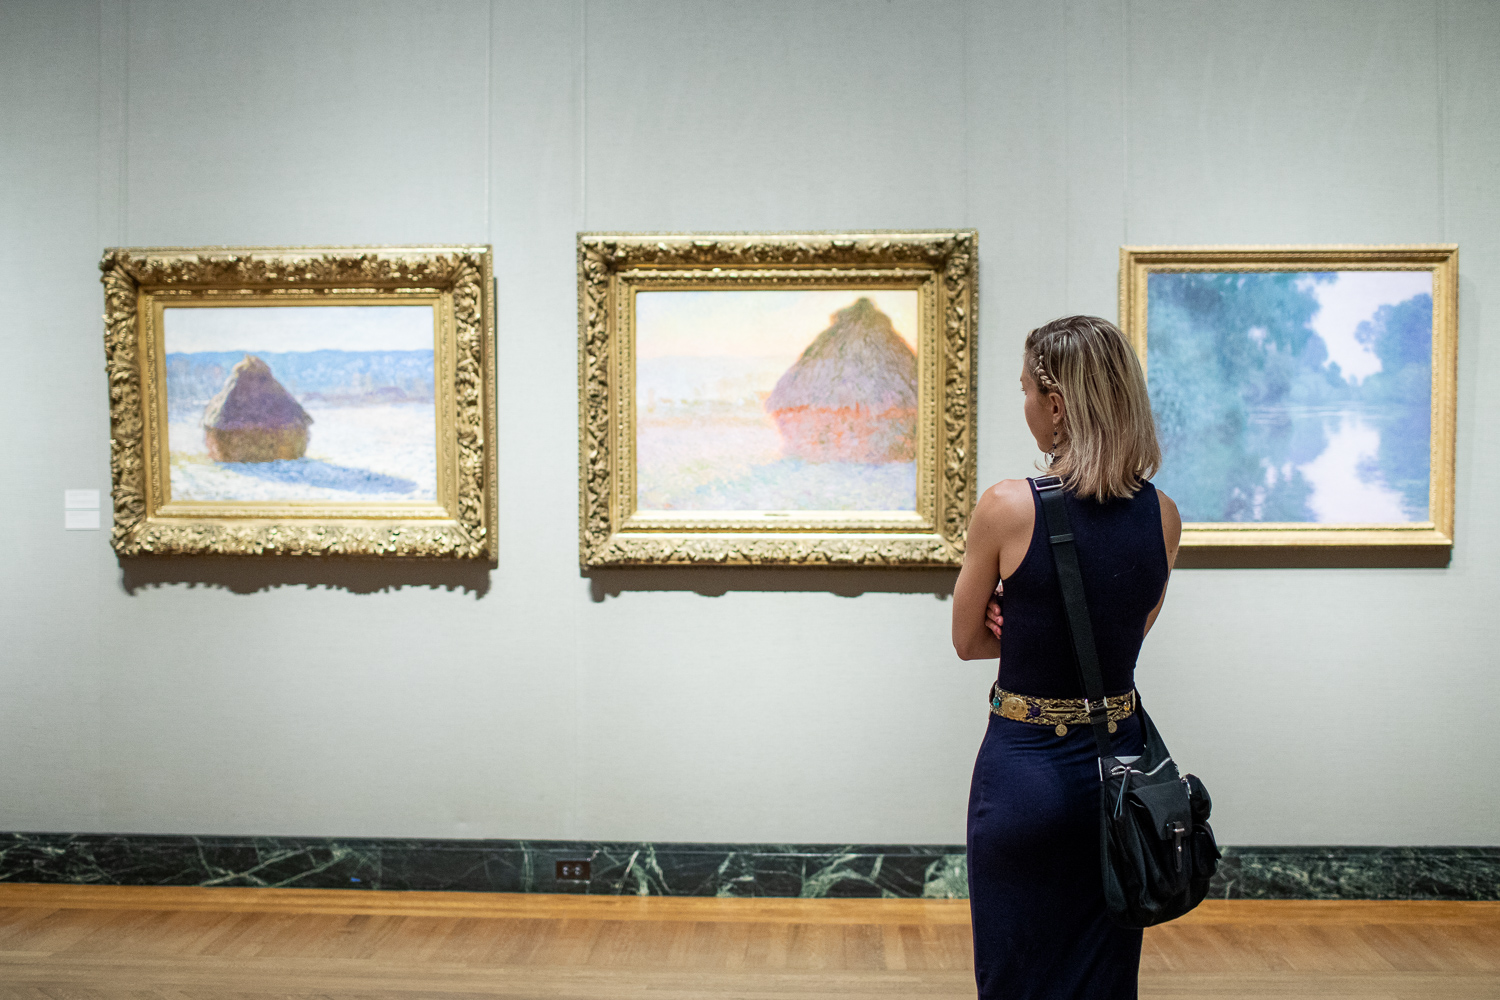 Observing Claude Monet's   Haystacks   series.